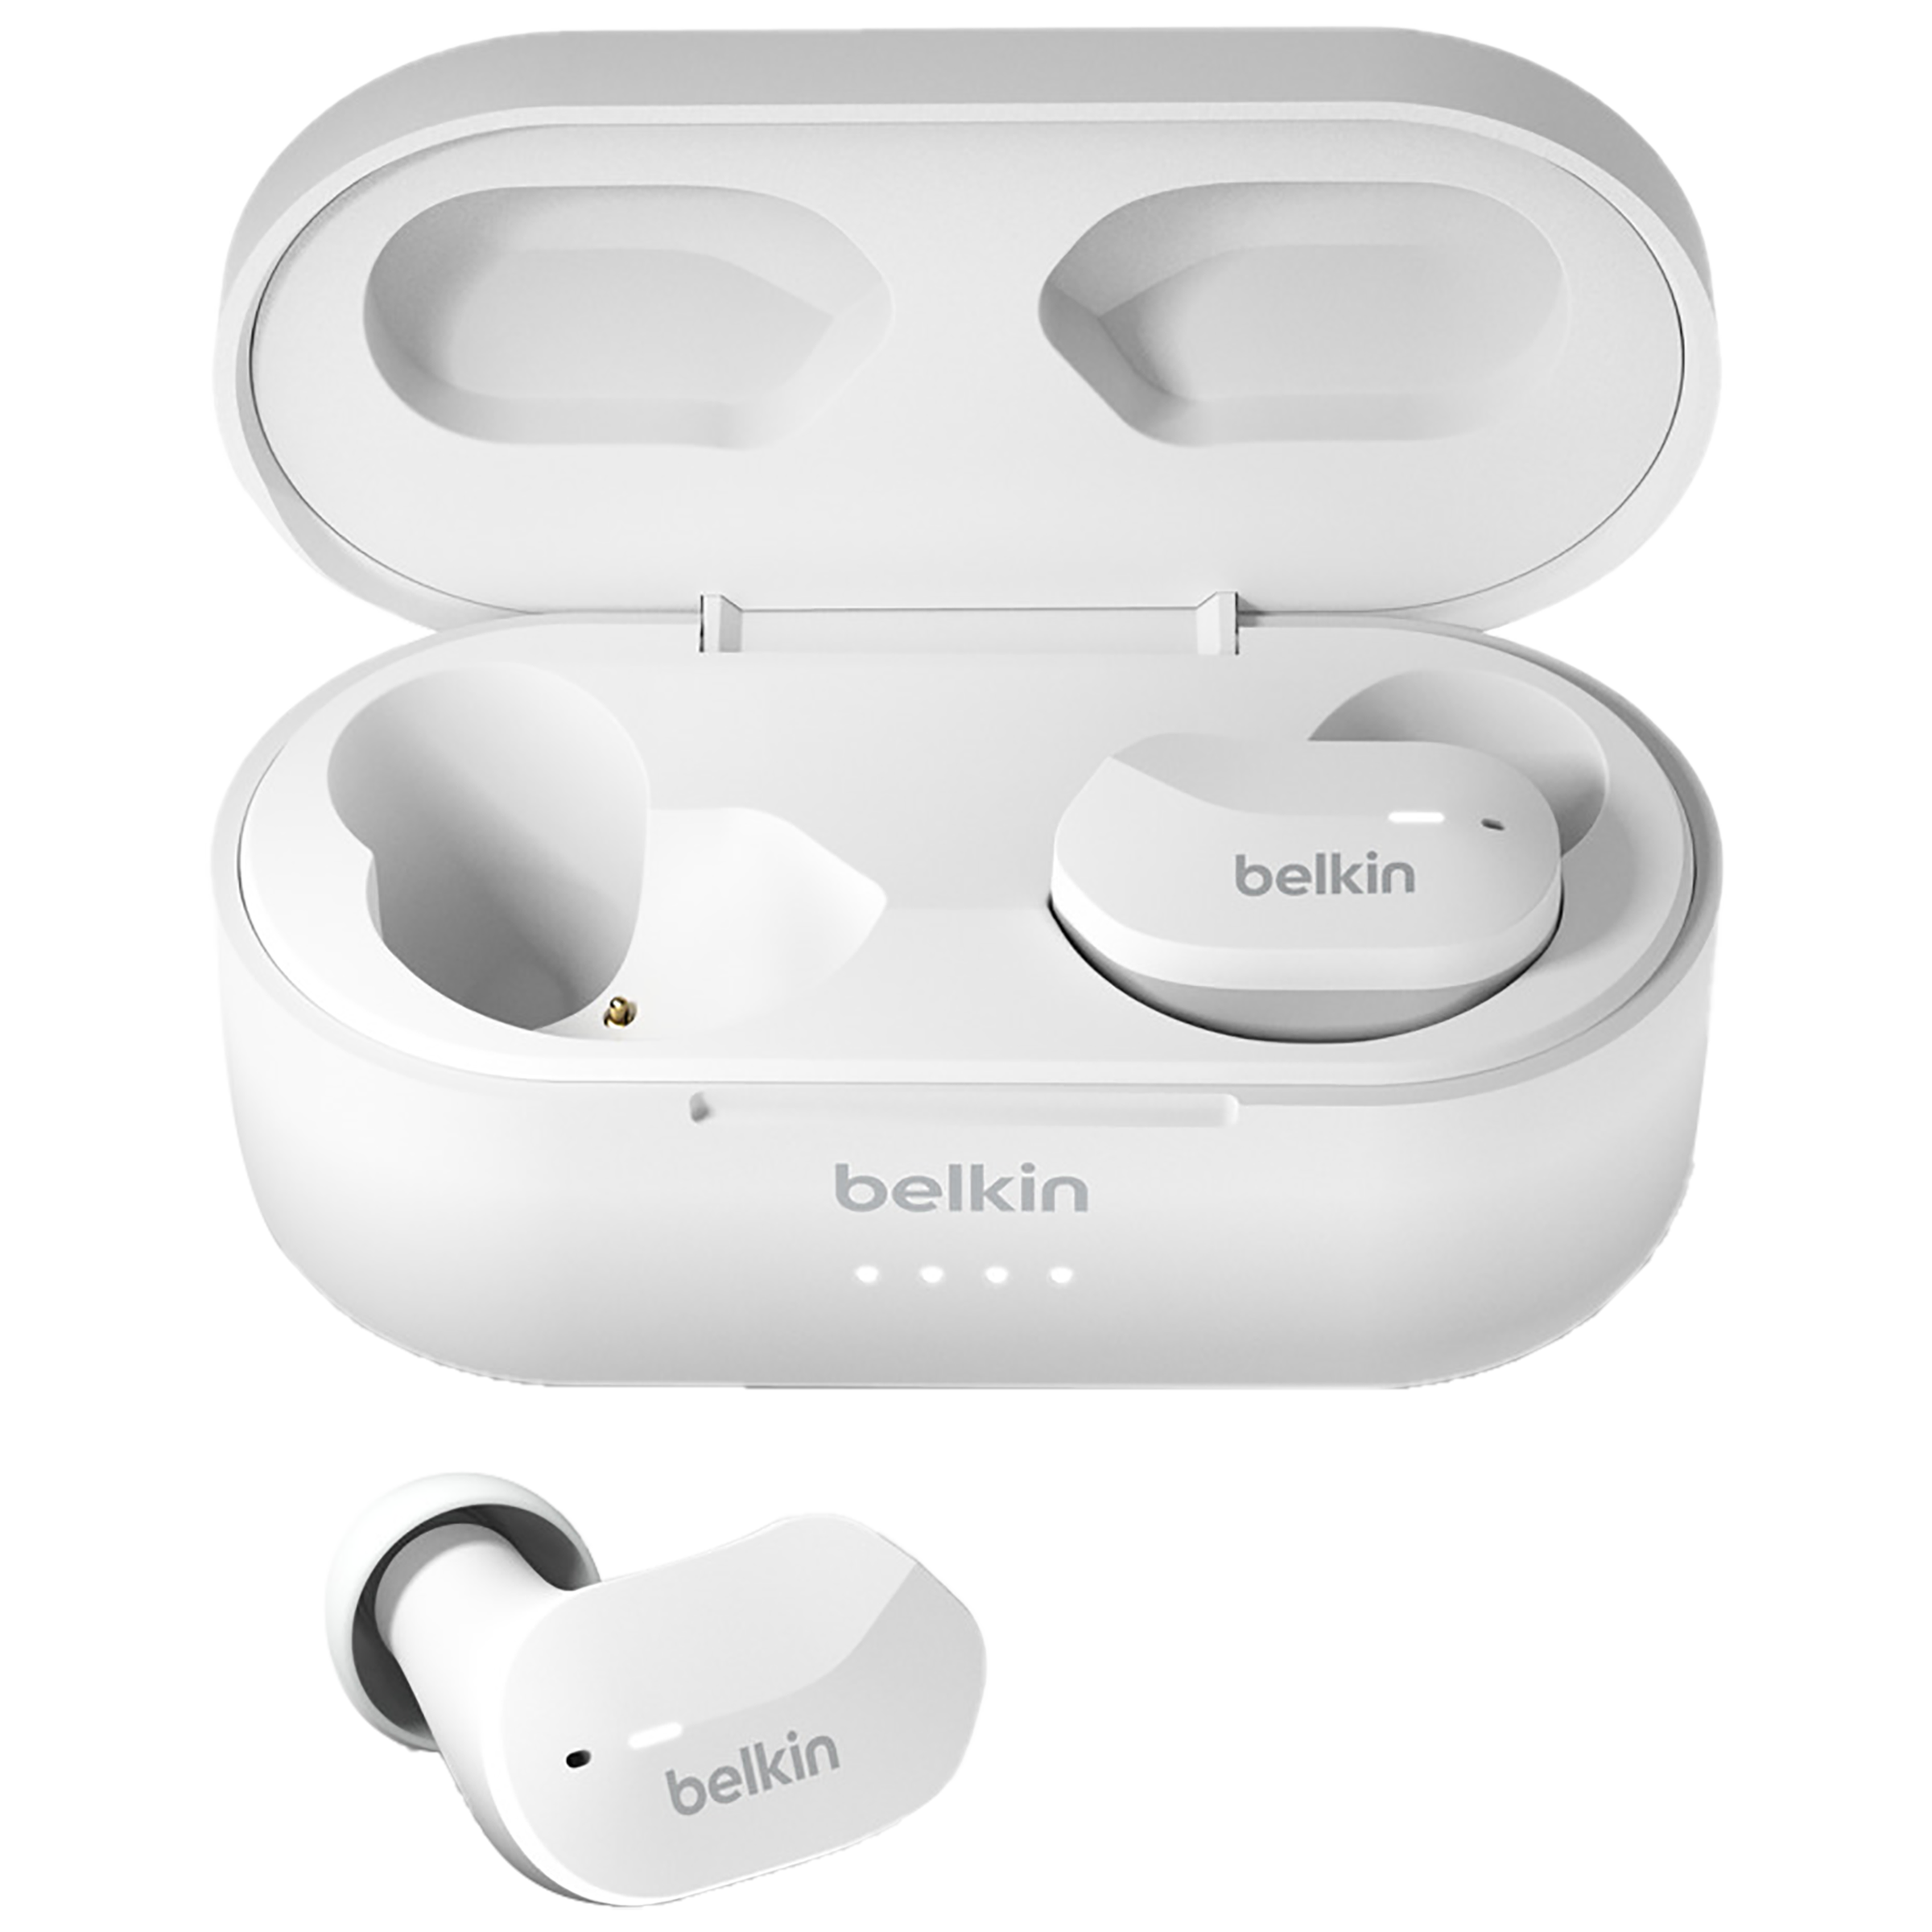 Belkin Soundform In-Ear Noise Isolation Truly Wireless Earbuds with Mic (Bluetooth, IPX5 Rated, AUC001btWH, White)